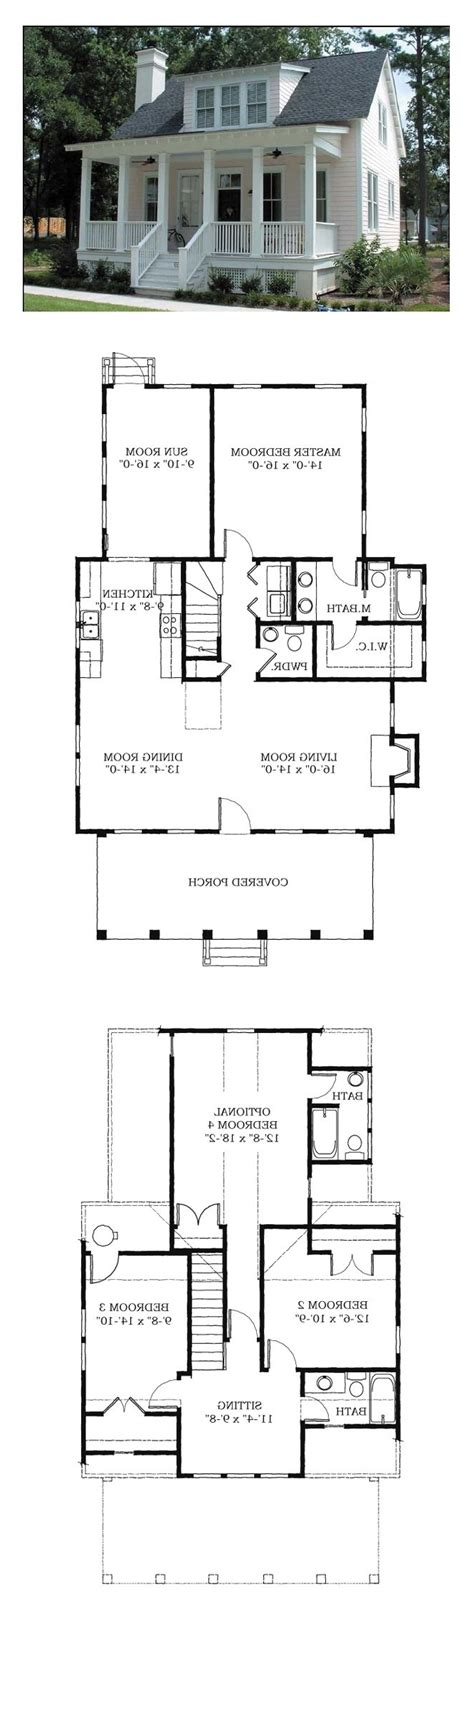 small tiny house plans best small house plans cottage layout plans mexzhouse com home design 60 best tiny houses 2016 small house